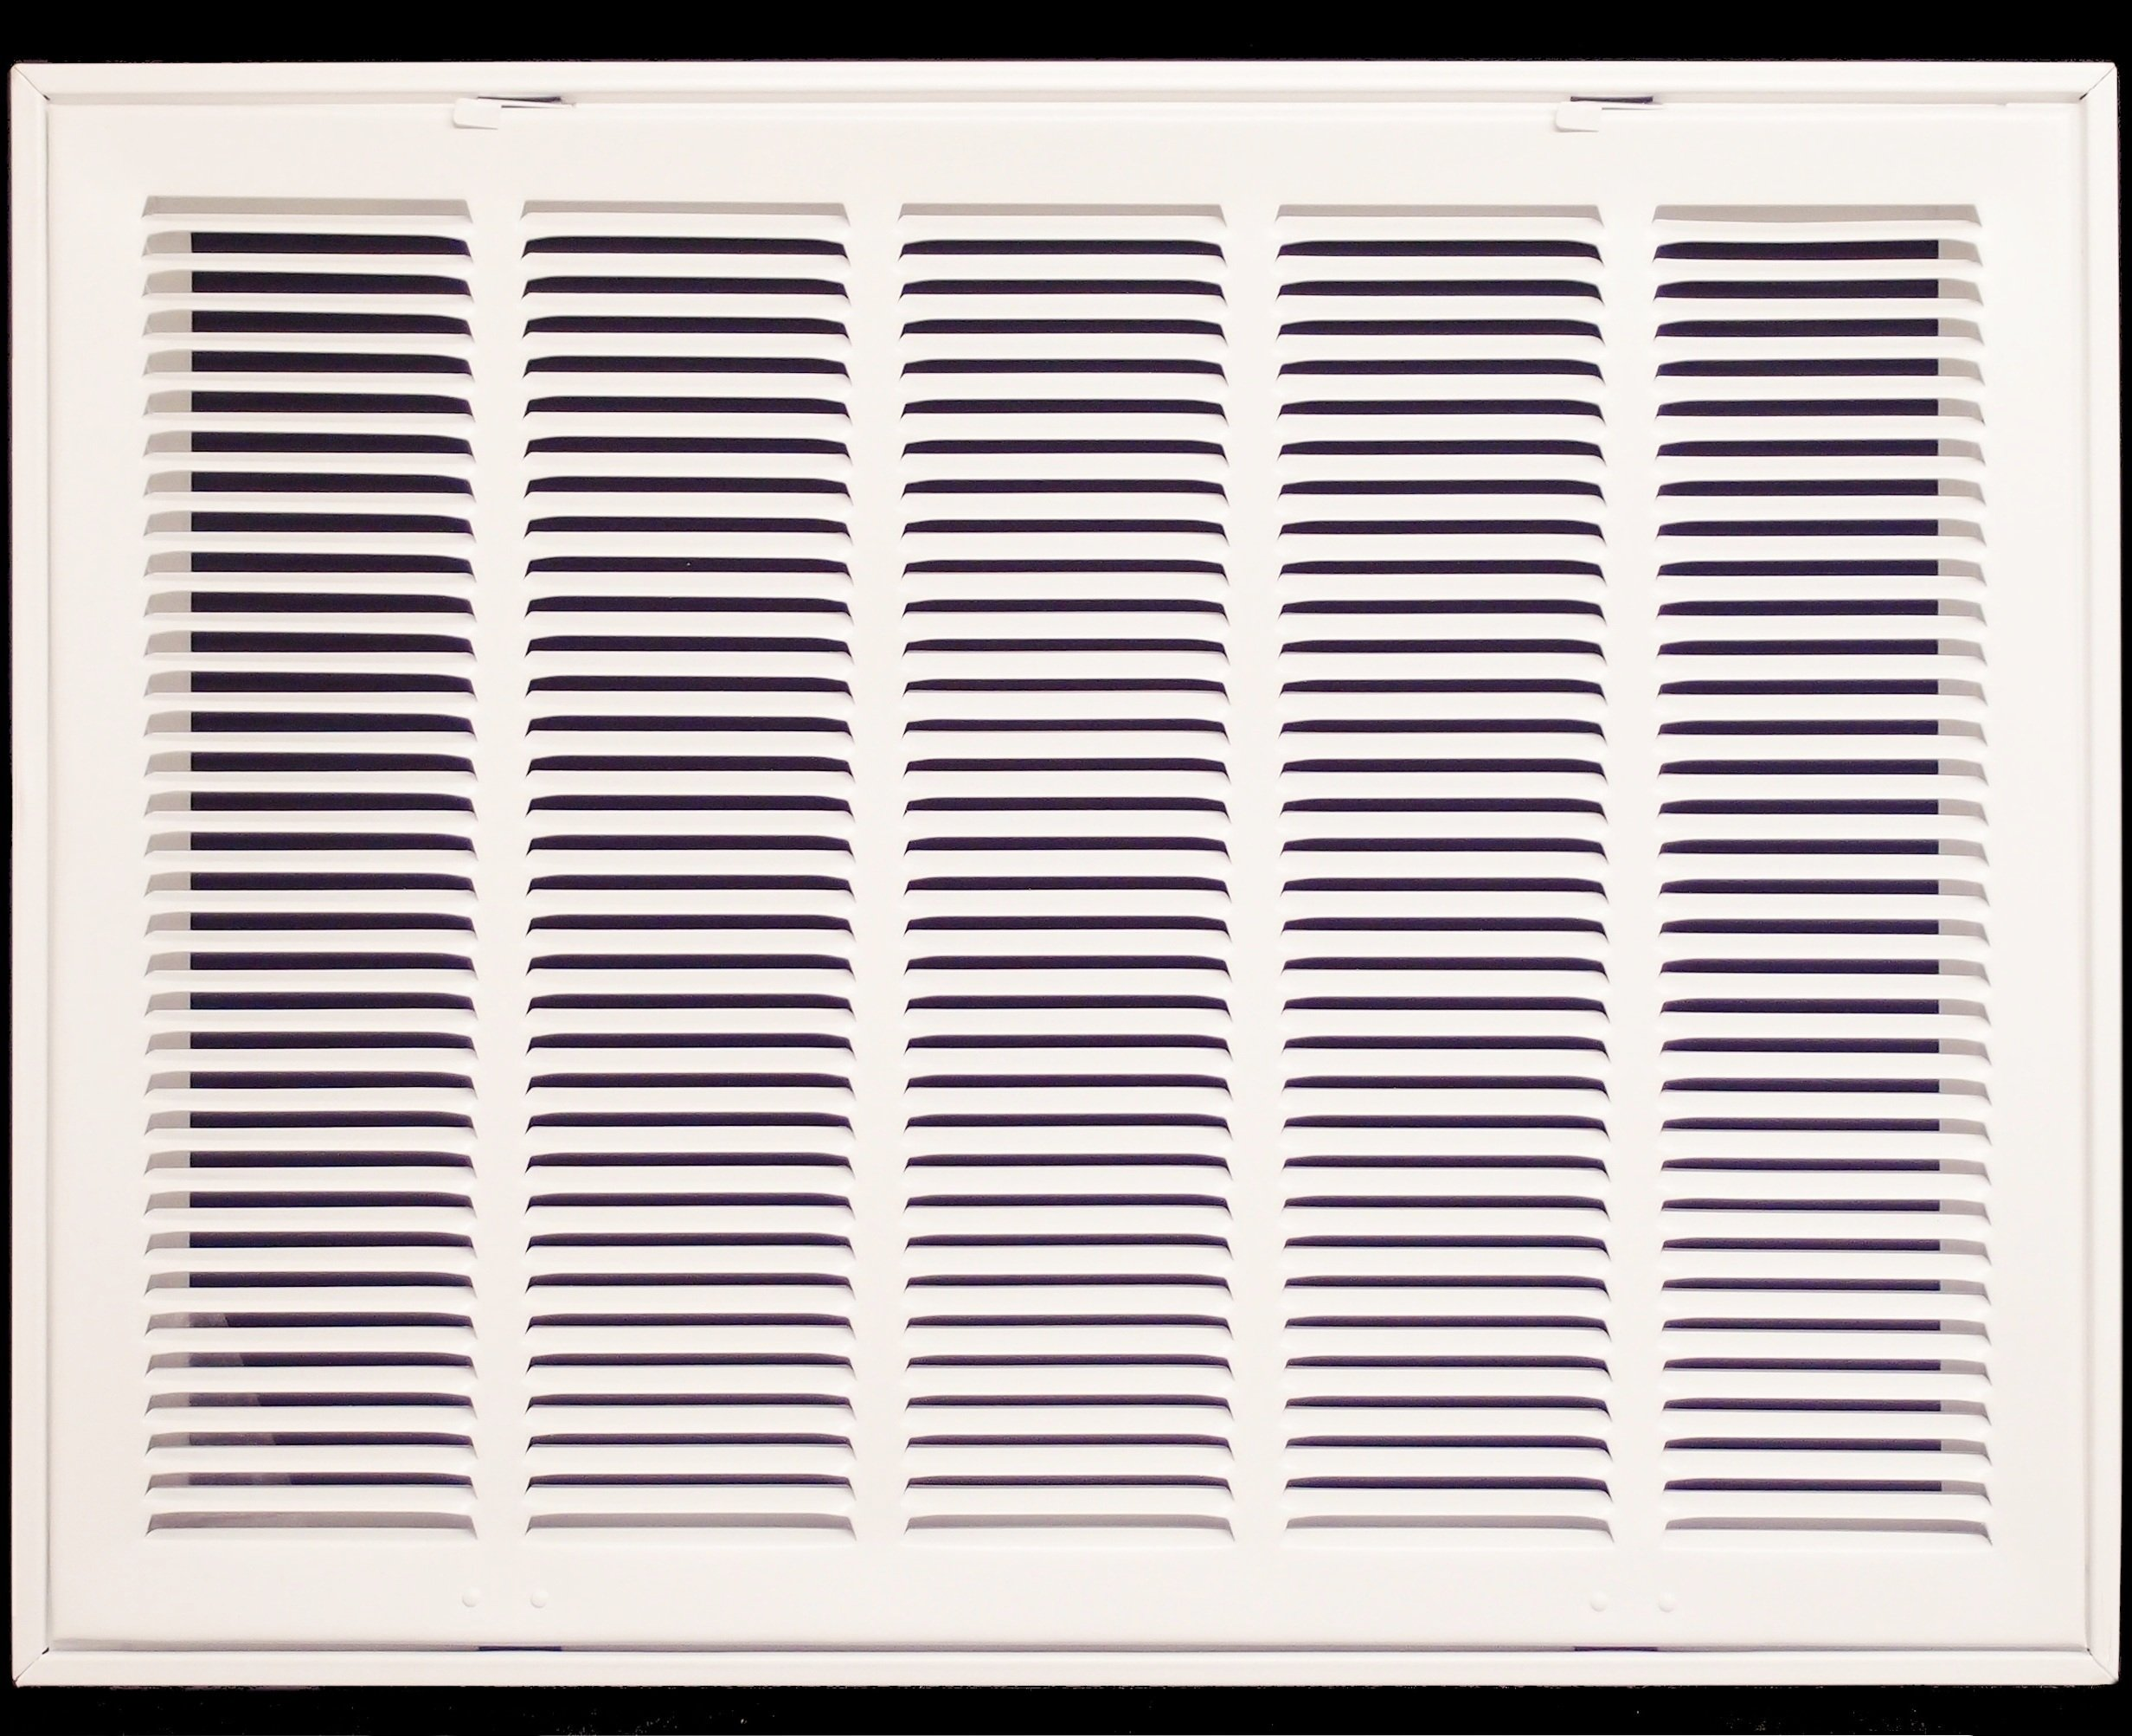 24'' X 18 Steel Return Air Filter Grille for 1'' Filter - Fixed Hinged - ceiling Recommended - HVAC DUCT COVER - Flat Stamped Face - White [Outer Dimensions: 26.5''w X 20.5''h]